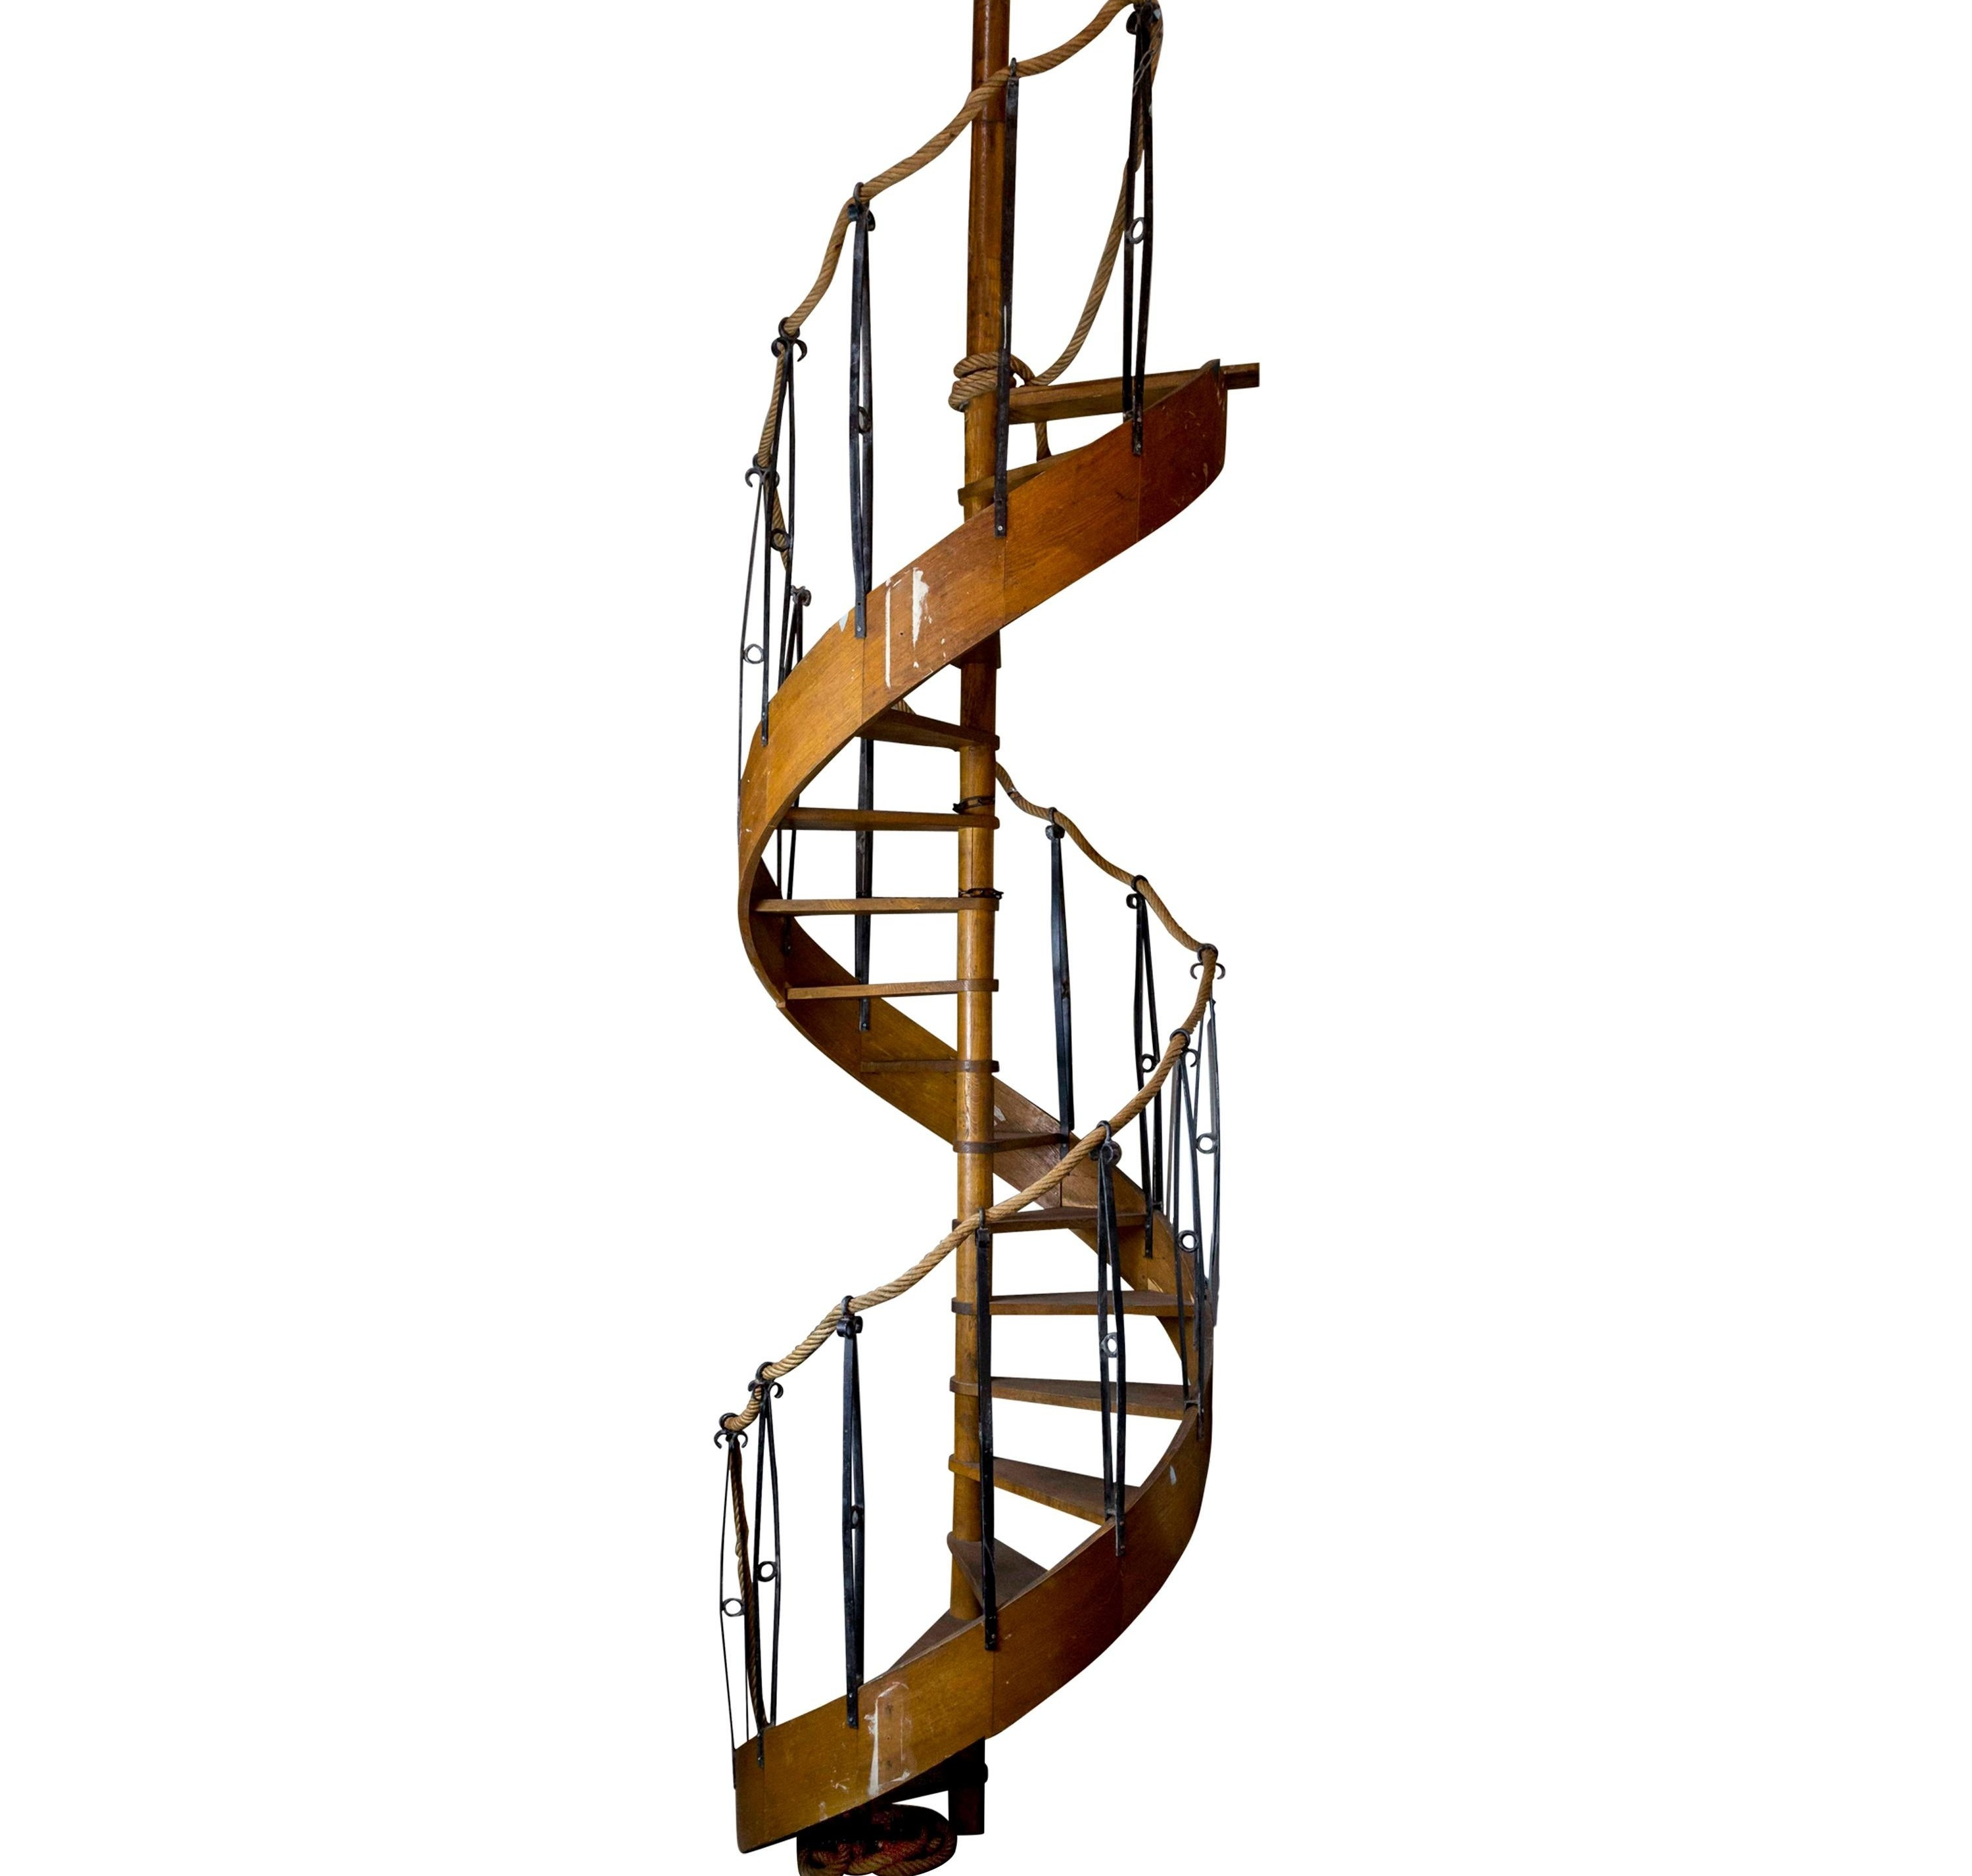 1930S Wood Spiral Staircase With Wrought Iron Balusters And Rope | Wooden Staircases For Sale | Cheap | Steel | Landing | House | New Model